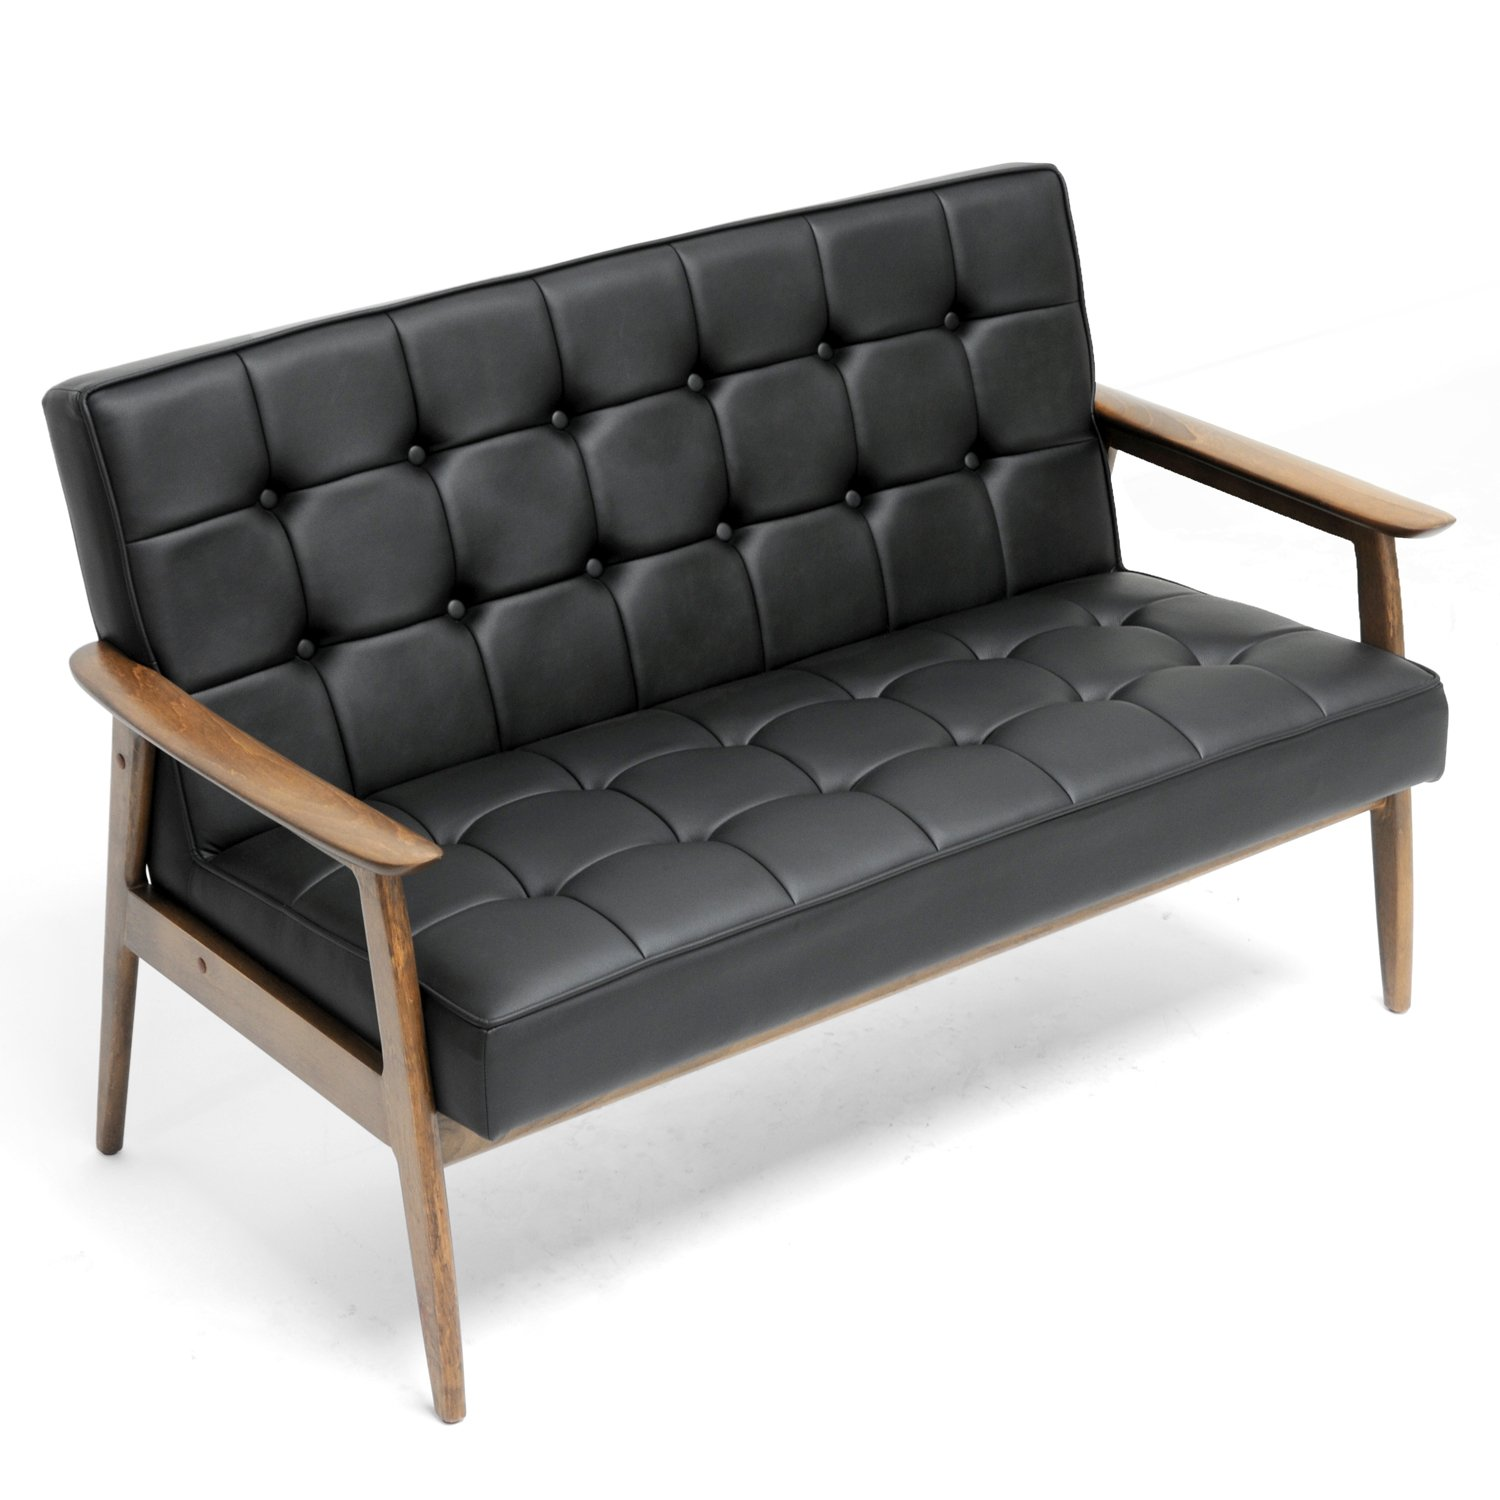 Terrific Amazon Com Baxton Studio Stratham Mid Century Modern Sofa Ibusinesslaw Wood Chair Design Ideas Ibusinesslaworg